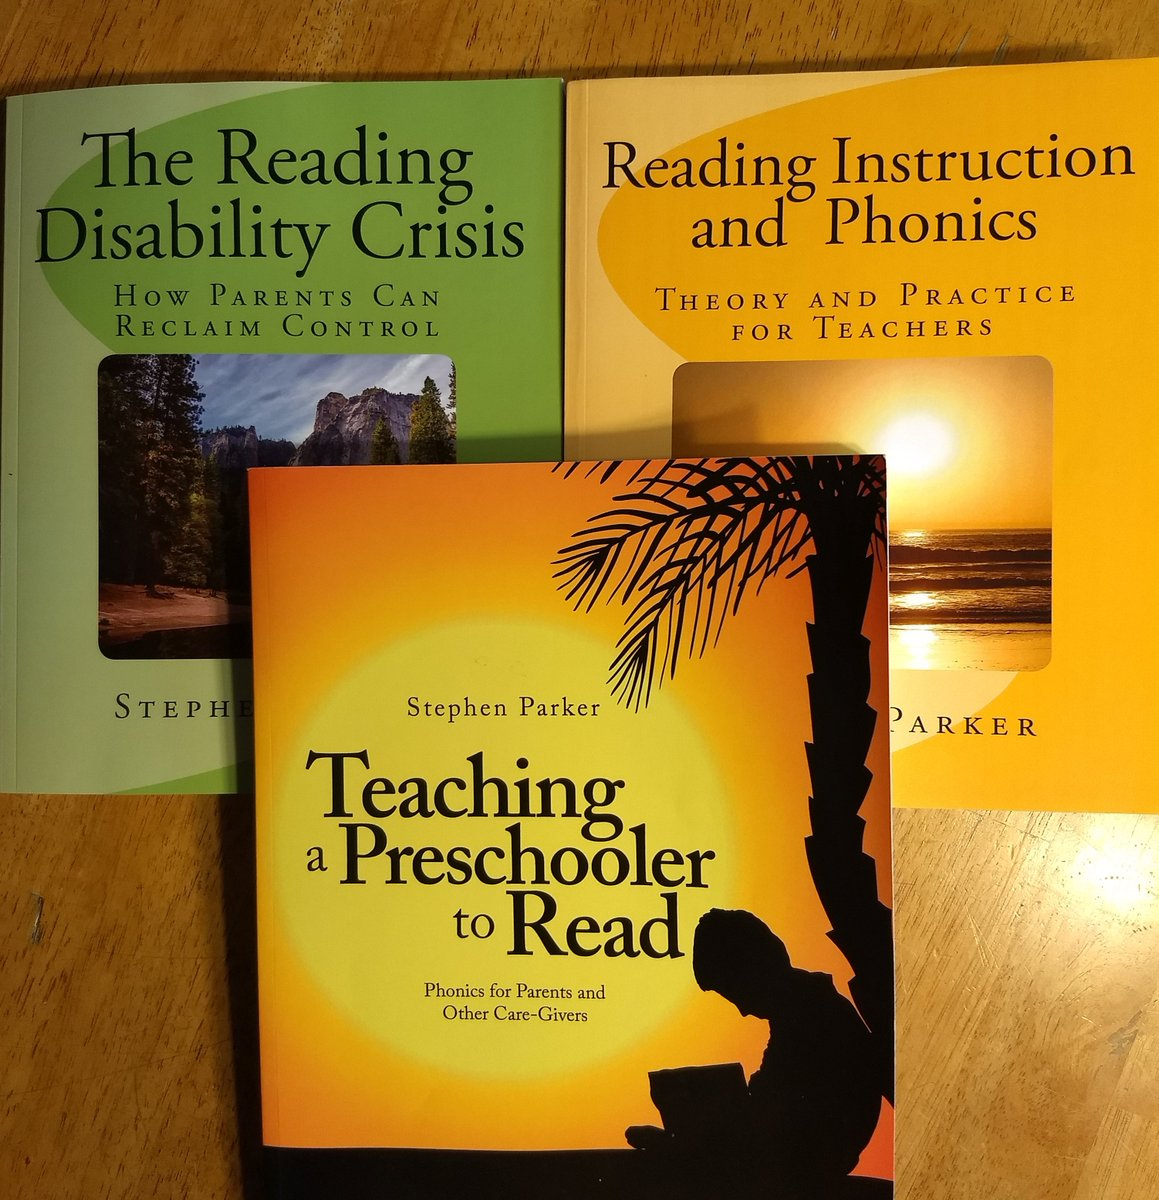 Phonics for Parents and Other Care-Givers Teaching a Preschooler to Read